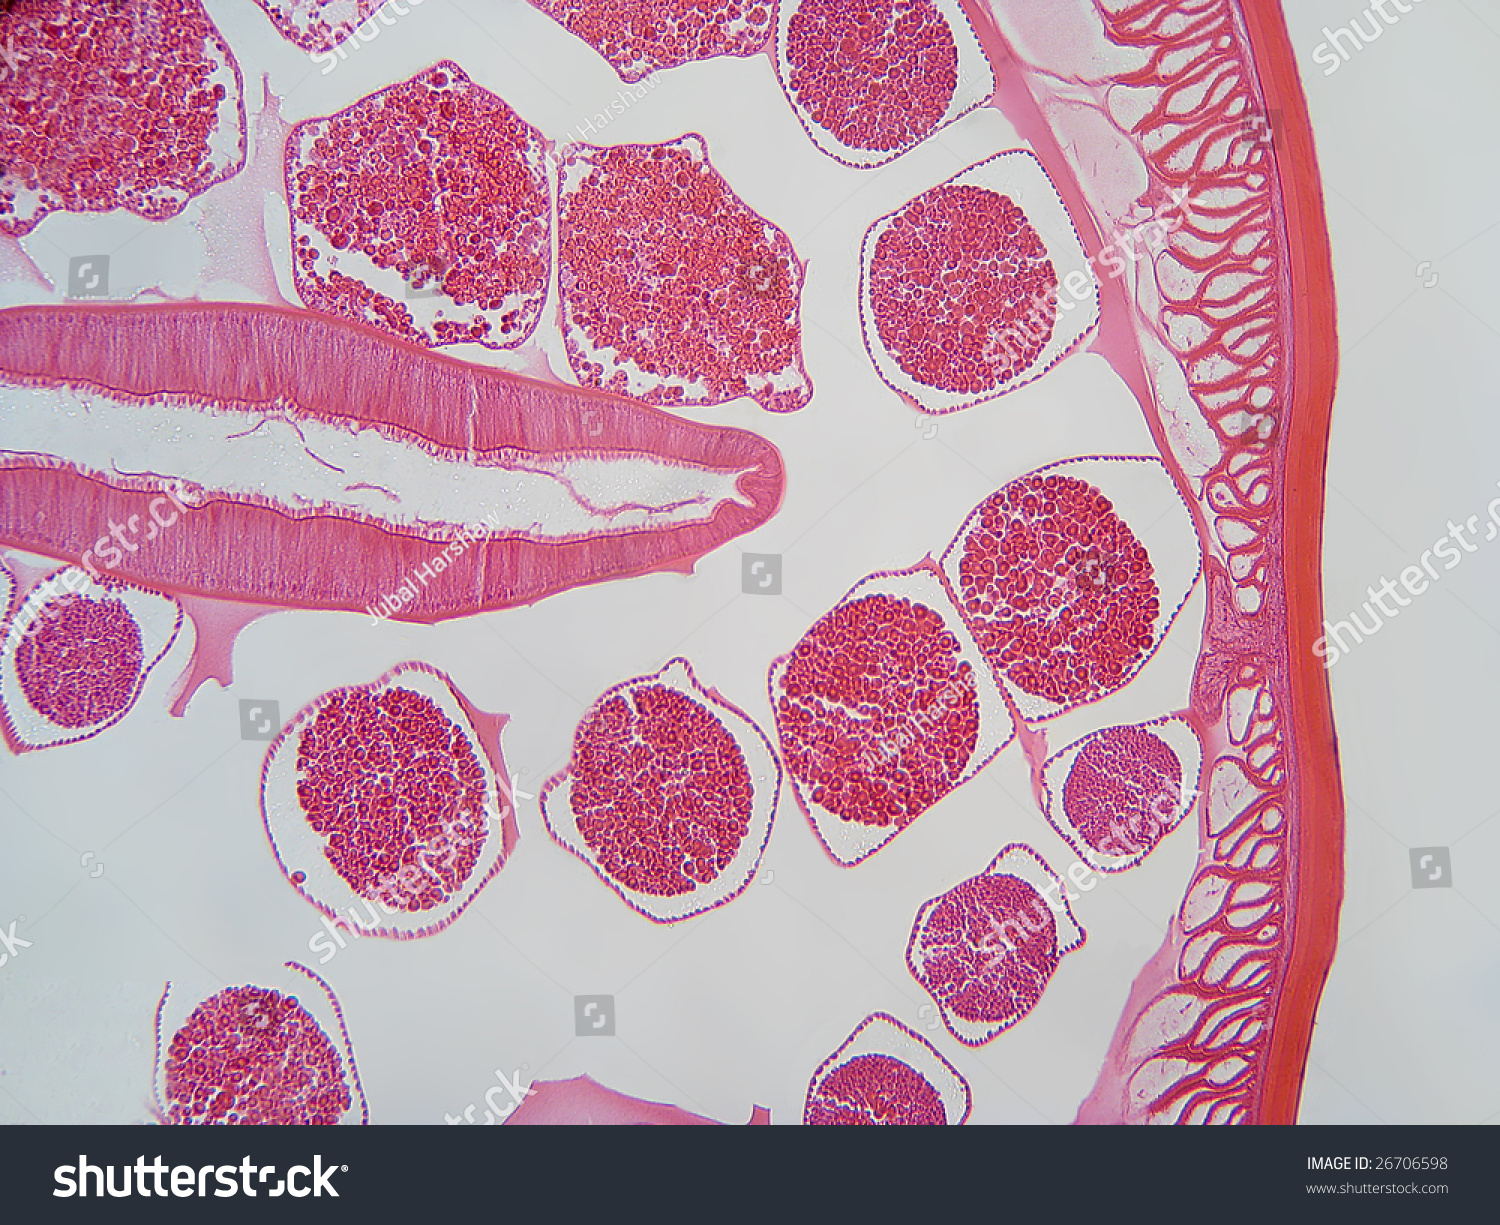 Roundworm cross section